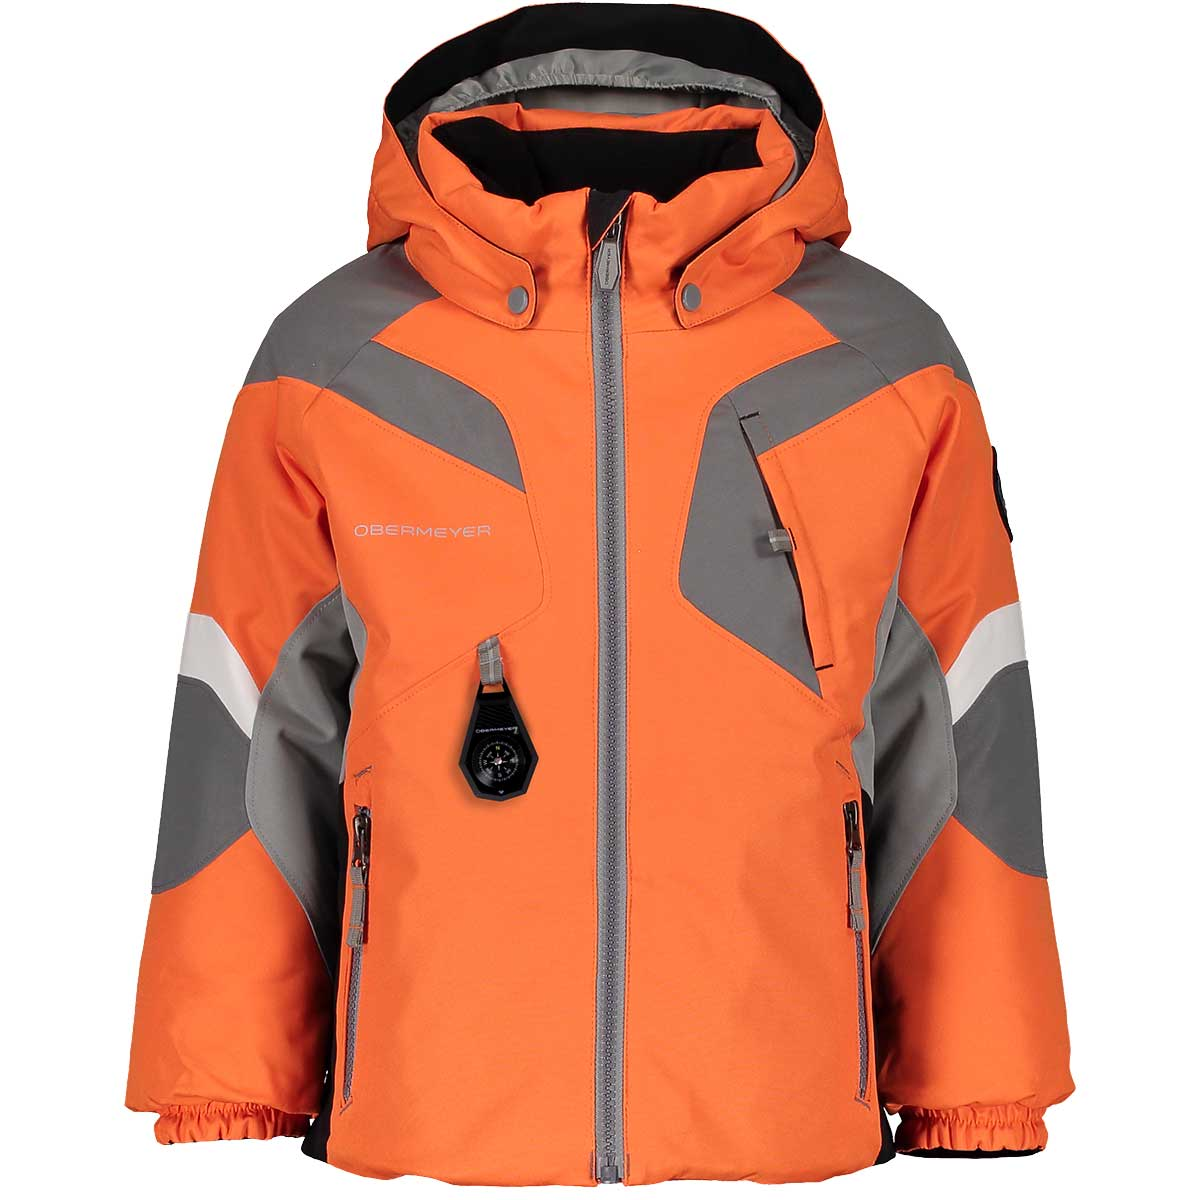 Obermeyer boys' Altair Jacket in Ober Orange front view